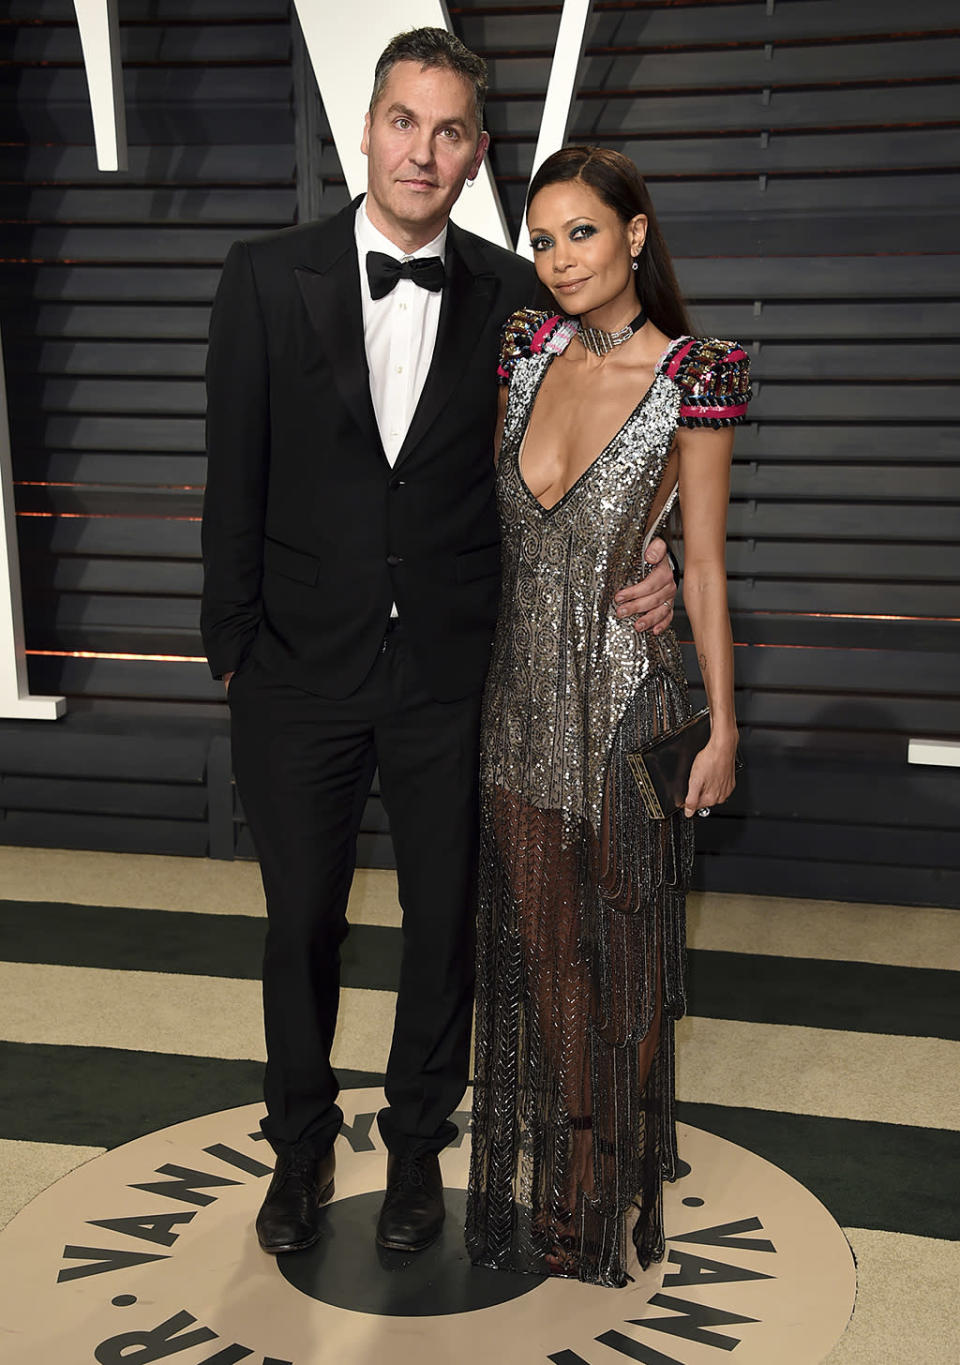 <p>Ol Parker, left, and Thandie Newton arrive at the Vanity Fair Oscar Party on Sunday, Feb. 26, 2017, in Beverly Hills, Calif. (Photo by Evan Agostini/Invision/AP) </p>